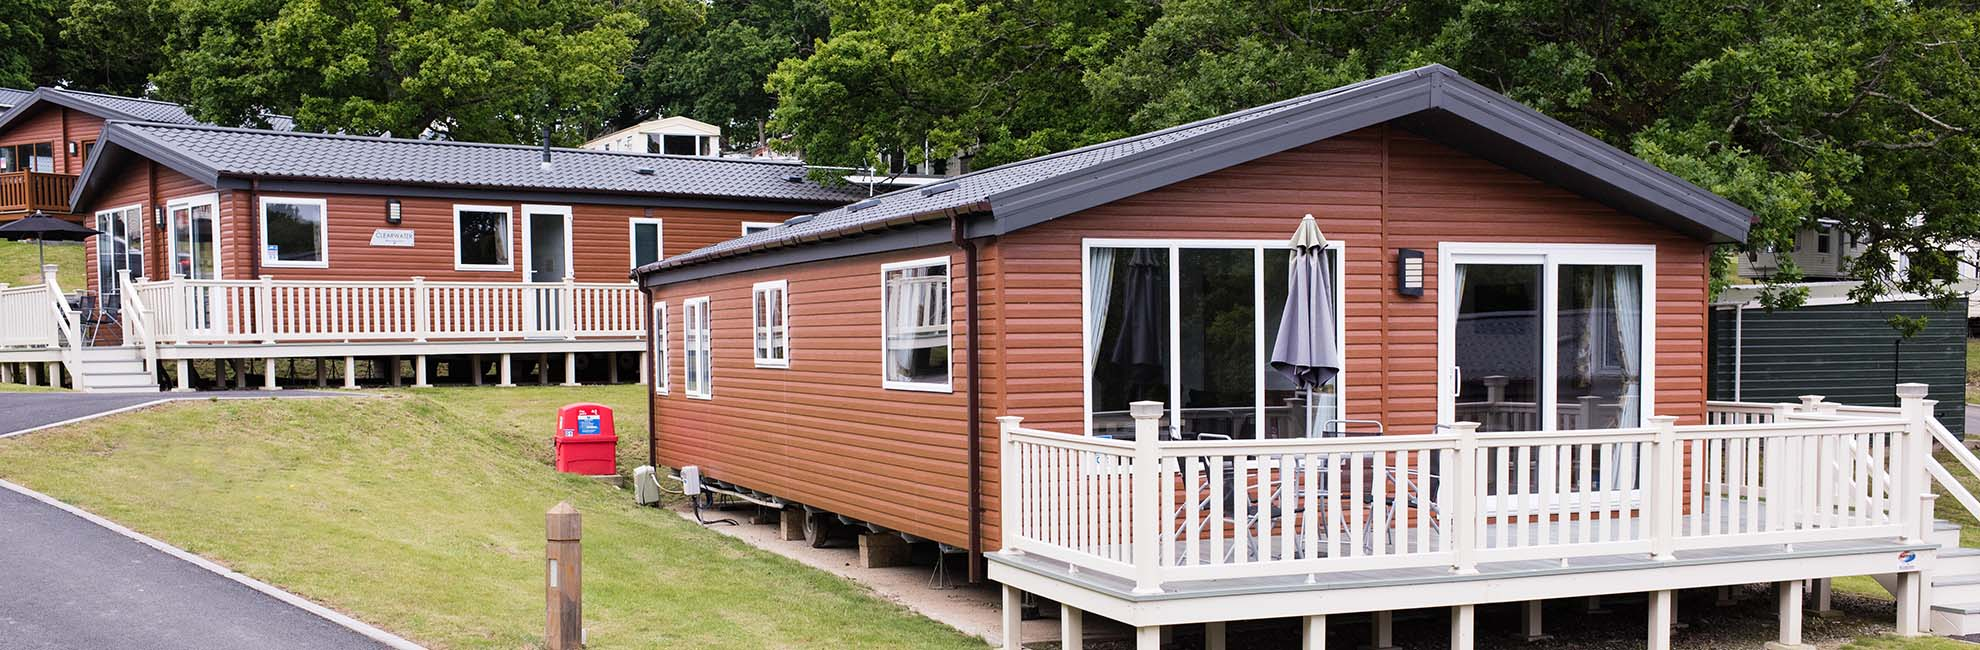 Luxury lodges for sale on a landscaped hillside at Thorness Bay Holiday Park on the Isle of Wight